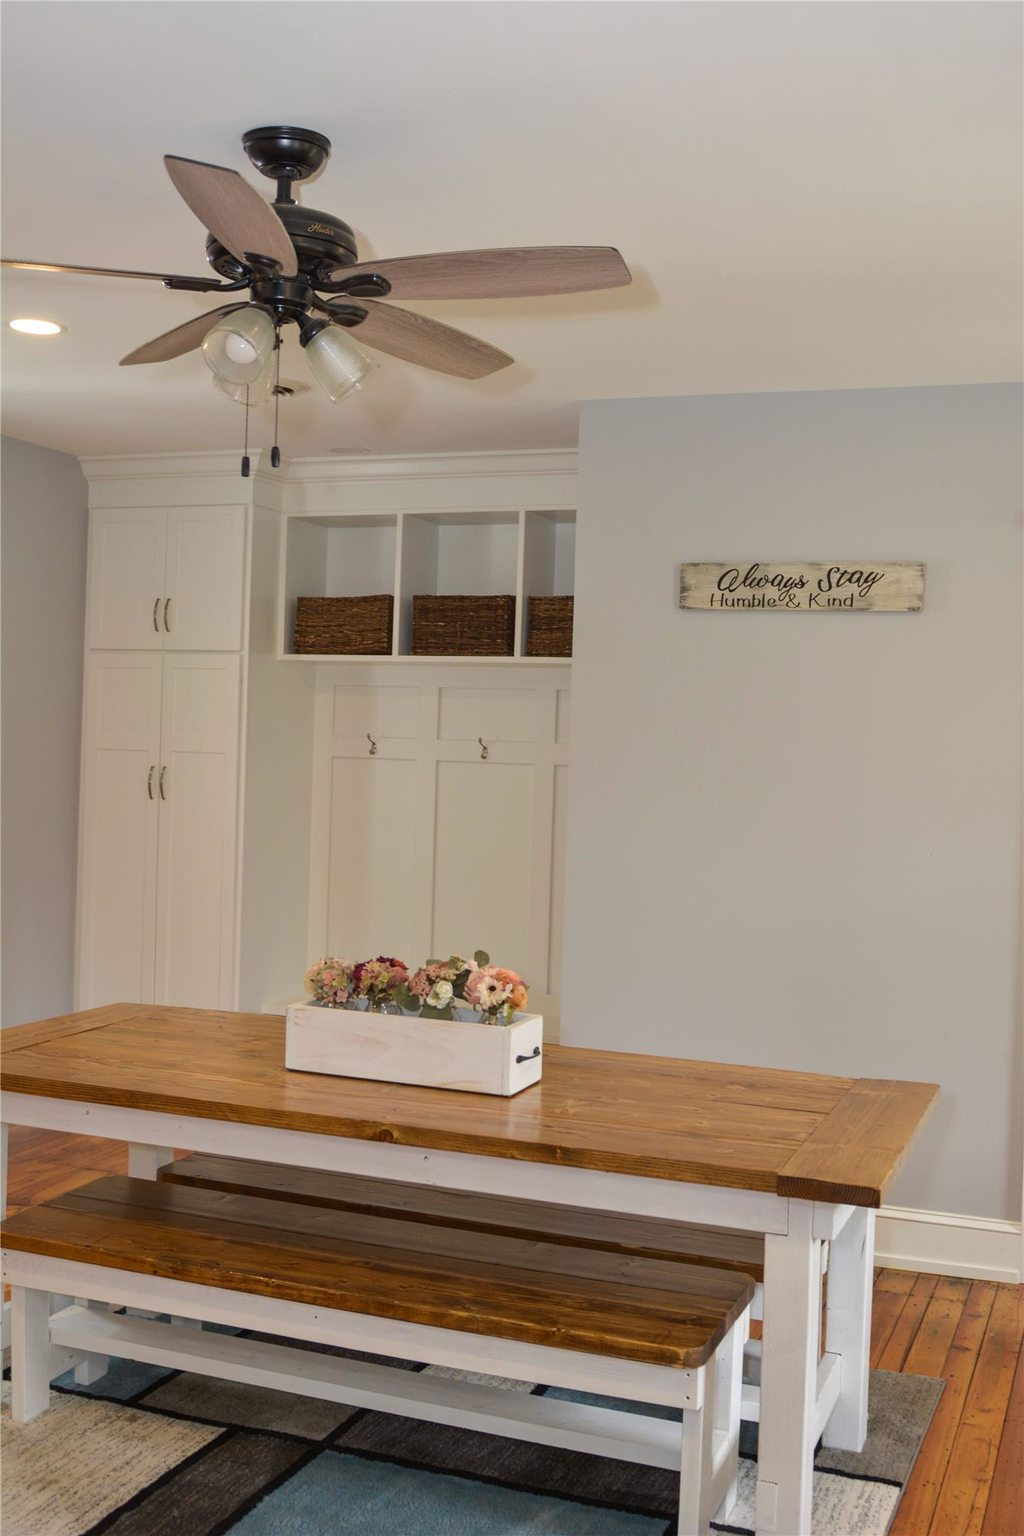 Dining Room with Built in Cabinets, Overhead Storage, and Hangars